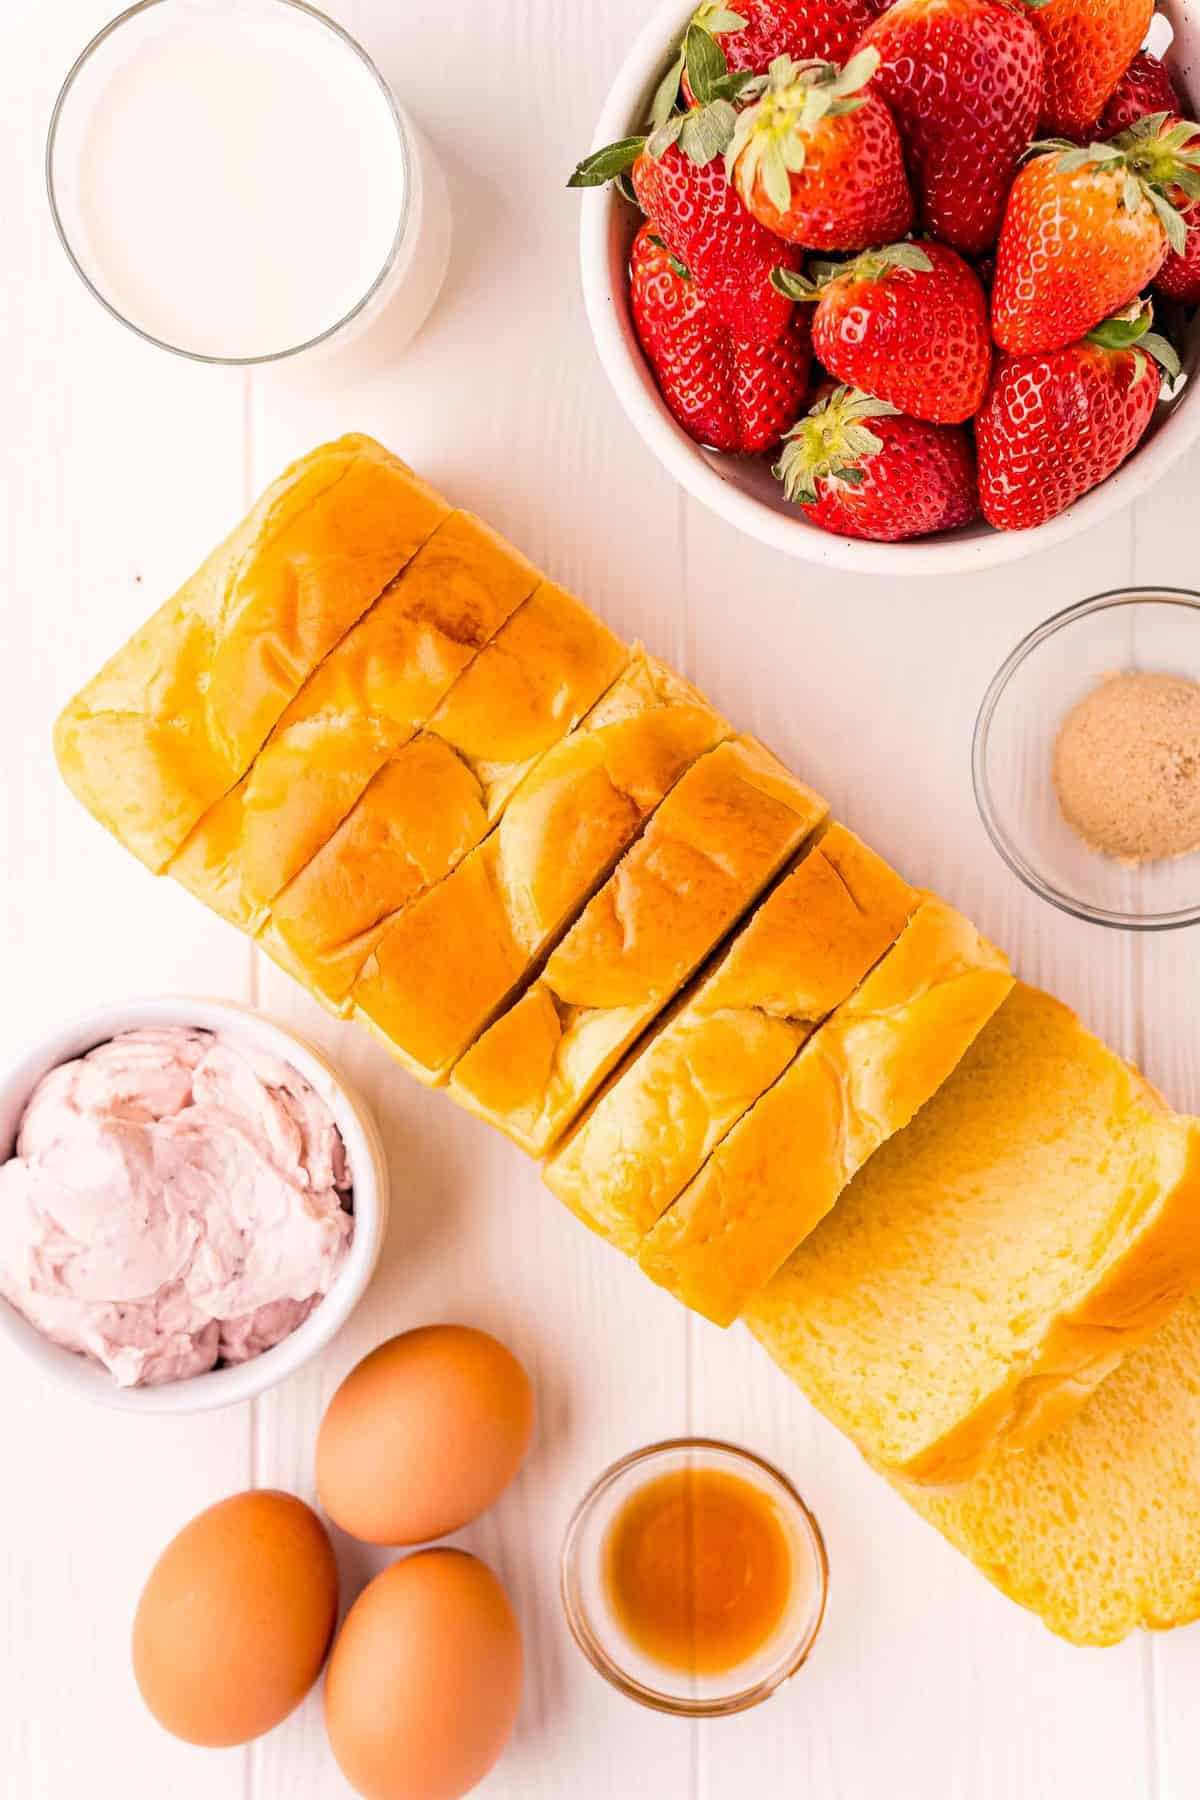 Overhead view of ingredients needed for strawberry cheesecake french toast.